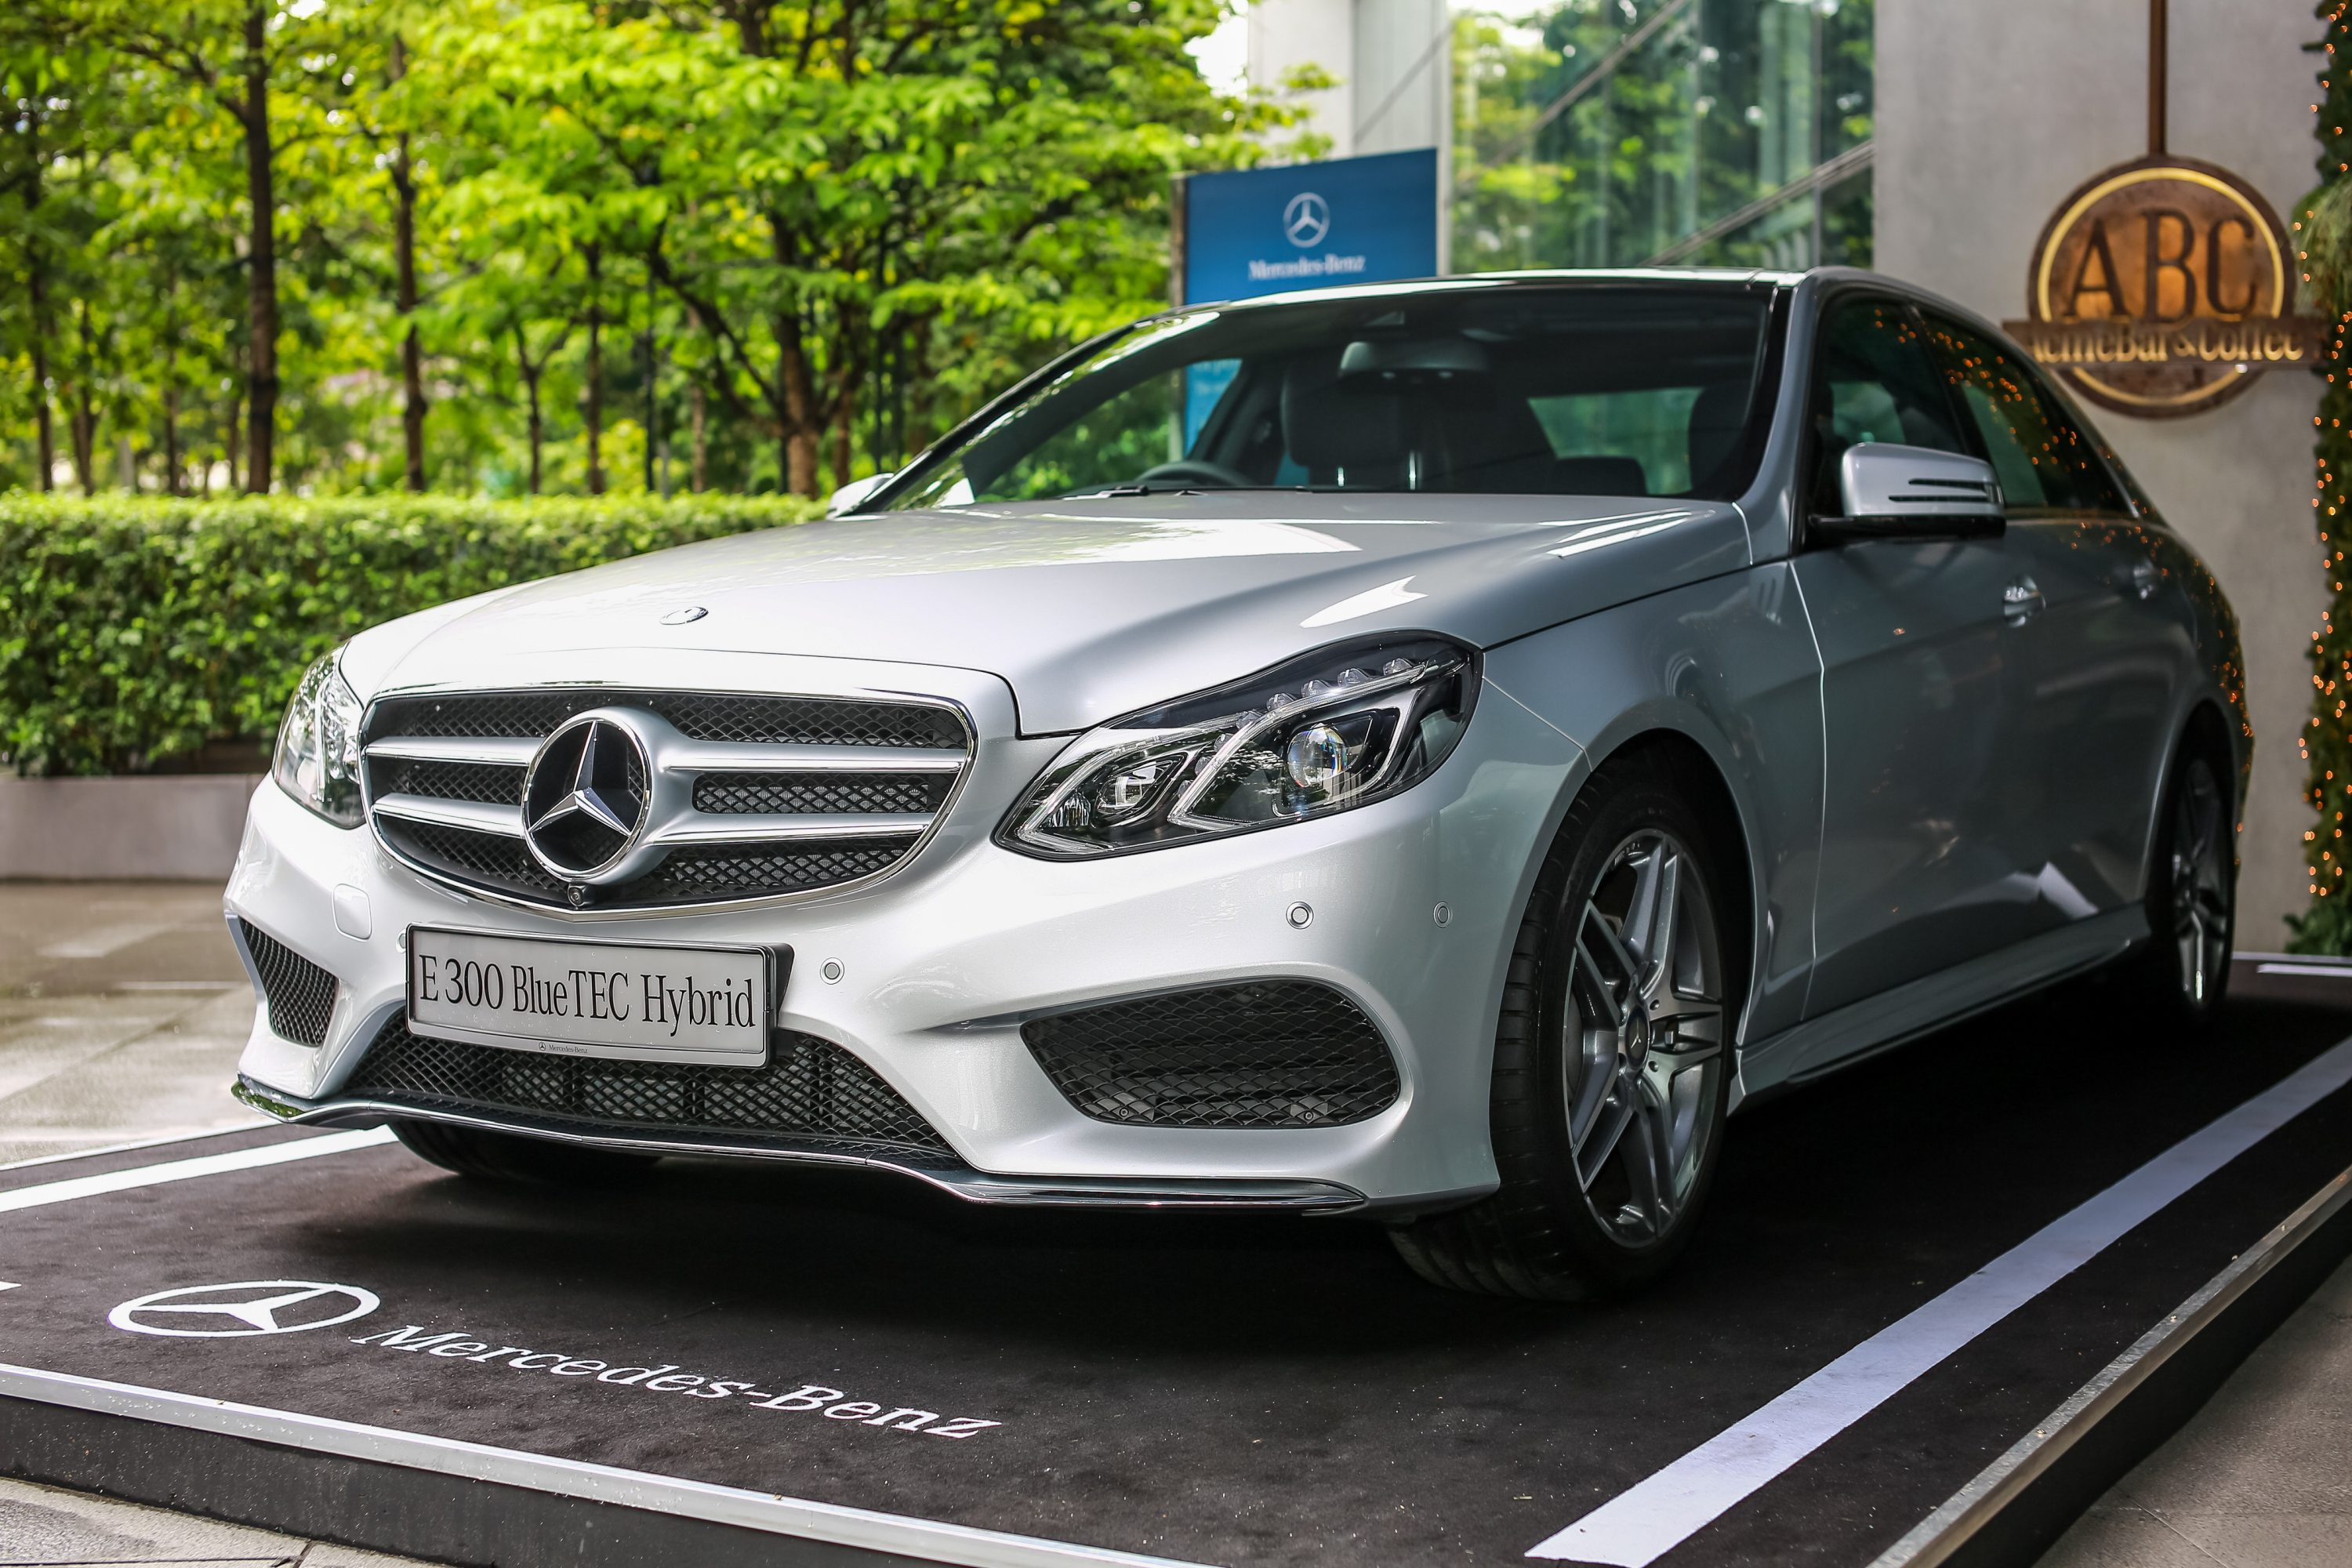 Mercedes Benz Malaysia Announces Updated Pricing For The E 300 Bluetec Hybrid And S 400 H Battery Units